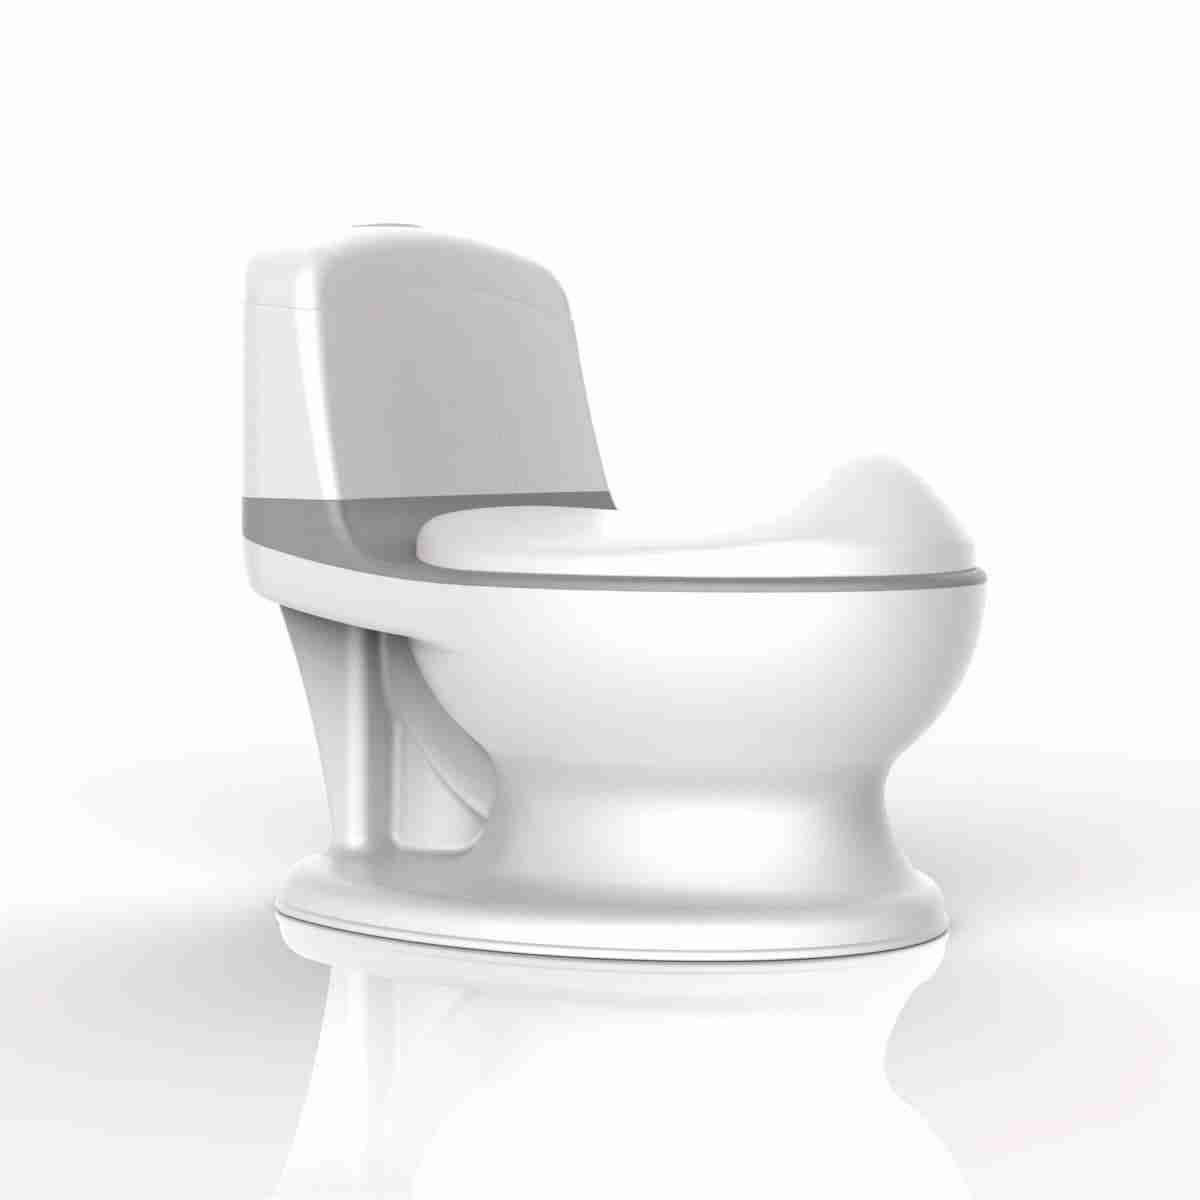 Pote Plus potty in grey